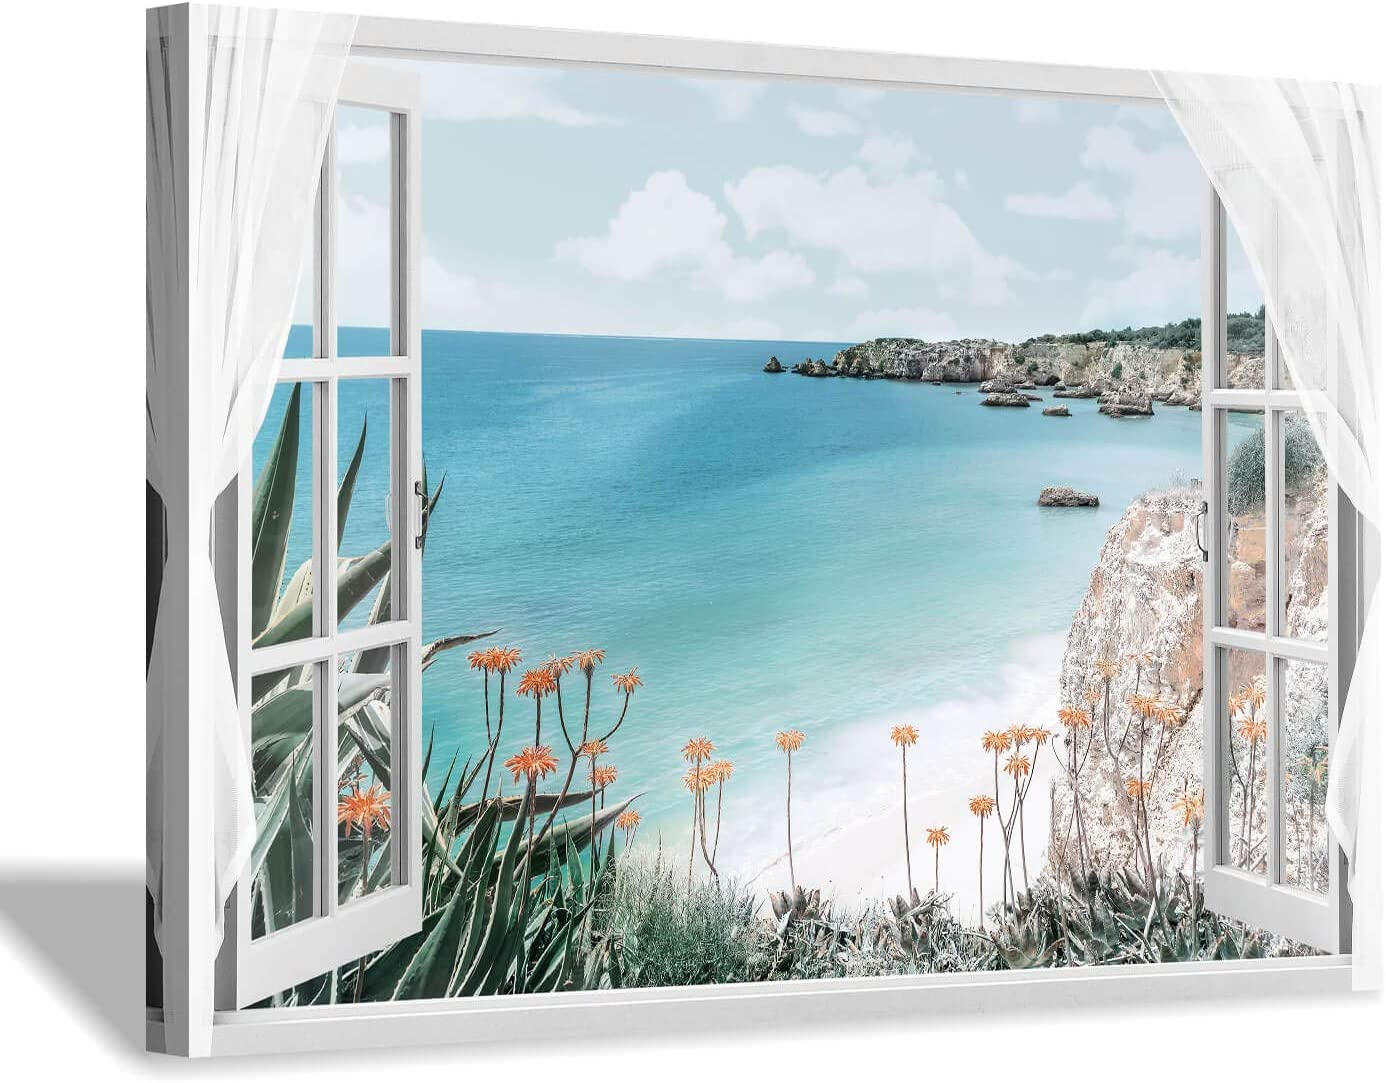 Hardy Gallery Coastal Painting Seascape Wall Art: Open Window View Picture Blue Ocean & Beach Artwork on Canvas for Bedroom (45'' x 30'' x 1 Panel)